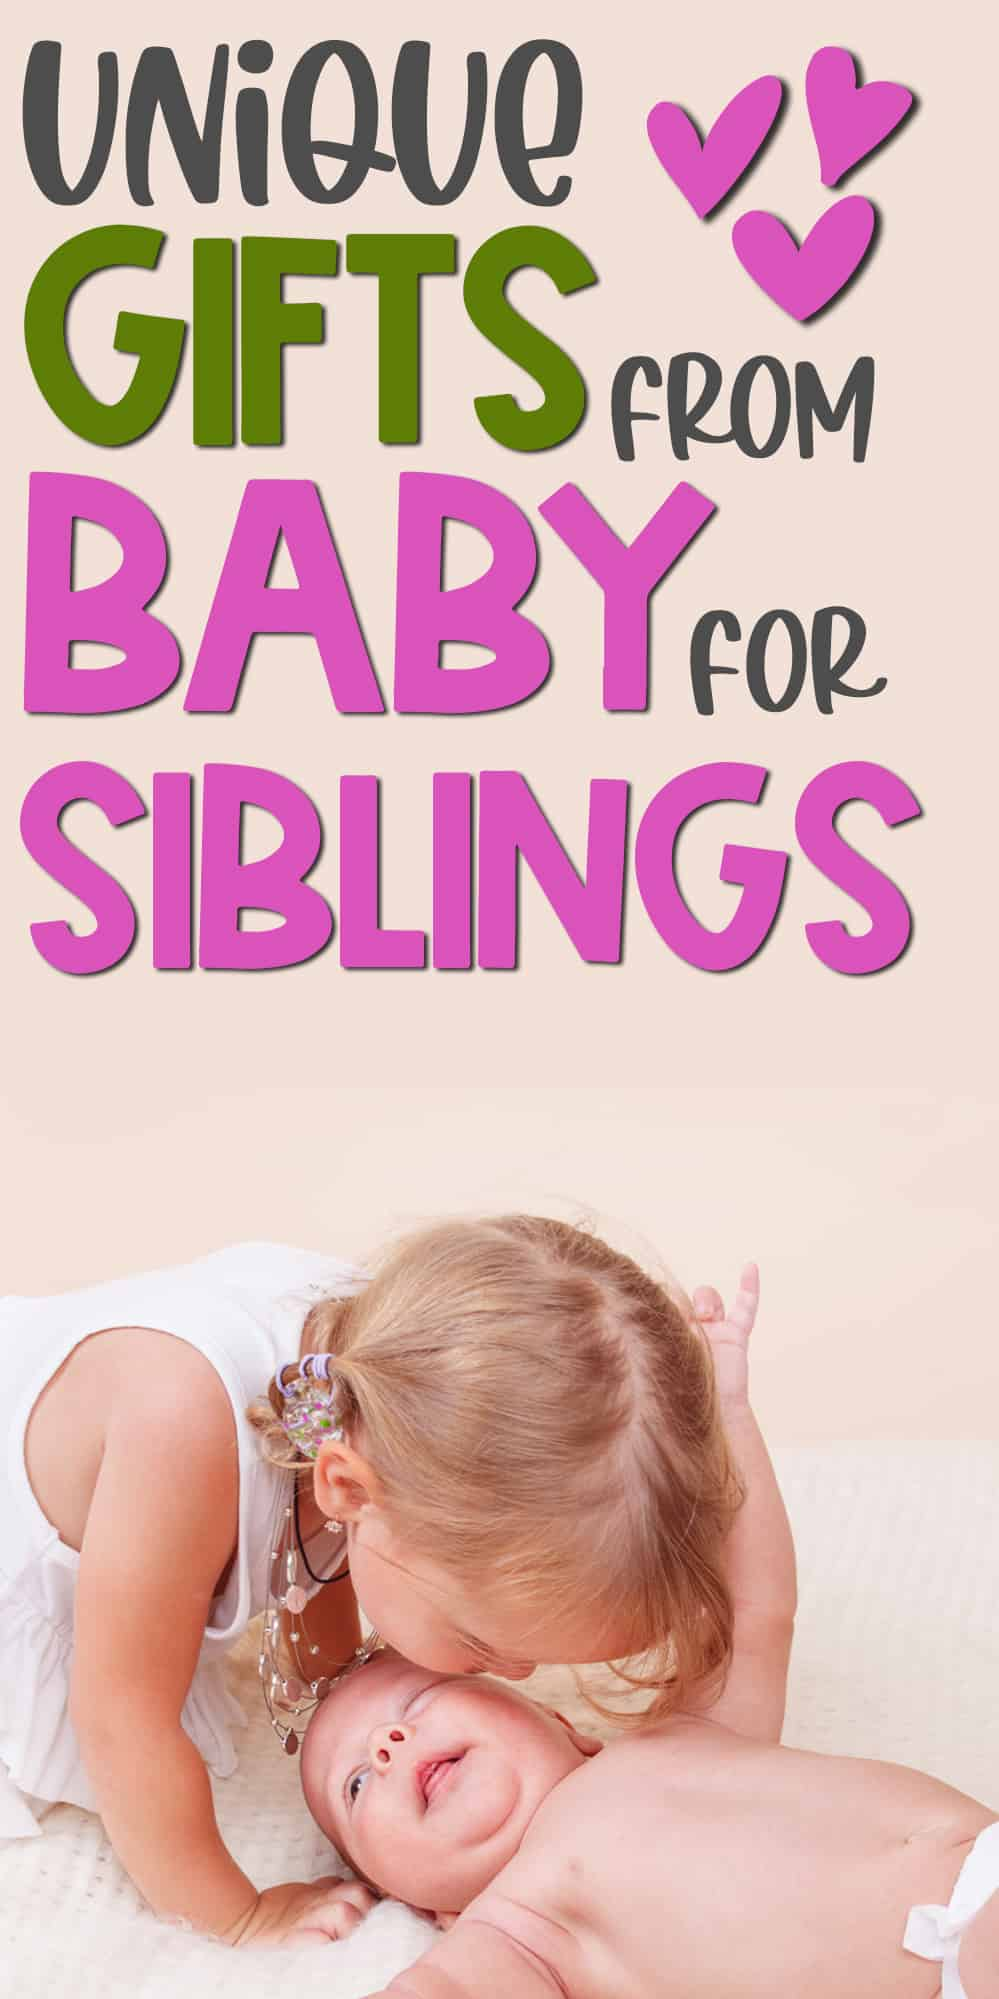 pinterest pin that says sibling gifts from the new baby